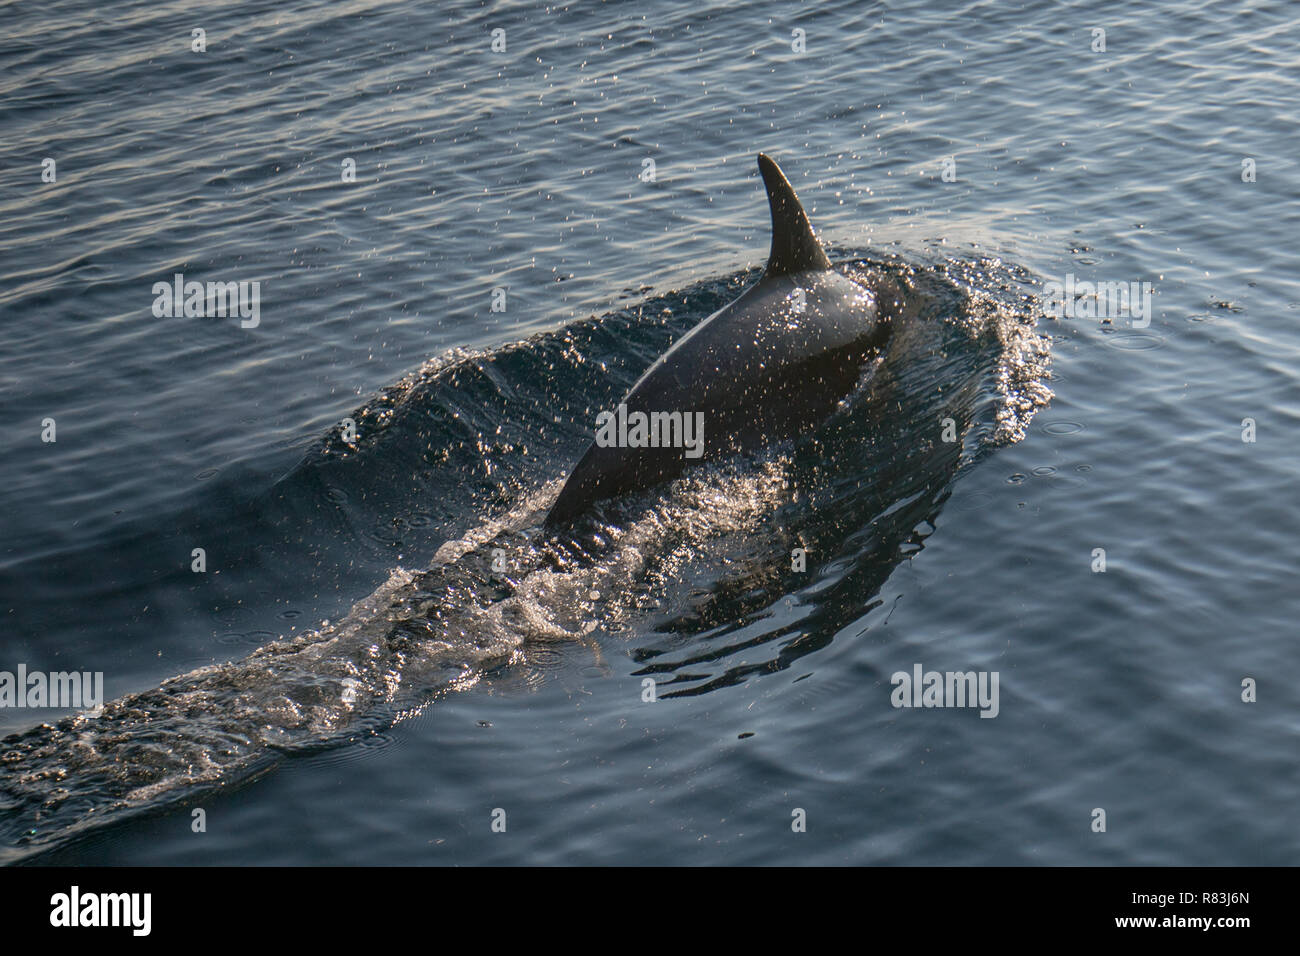 Common bottle nose dolphin bewteen Port Hueneme and the Channel Islands off the California coast United States - Stock Image